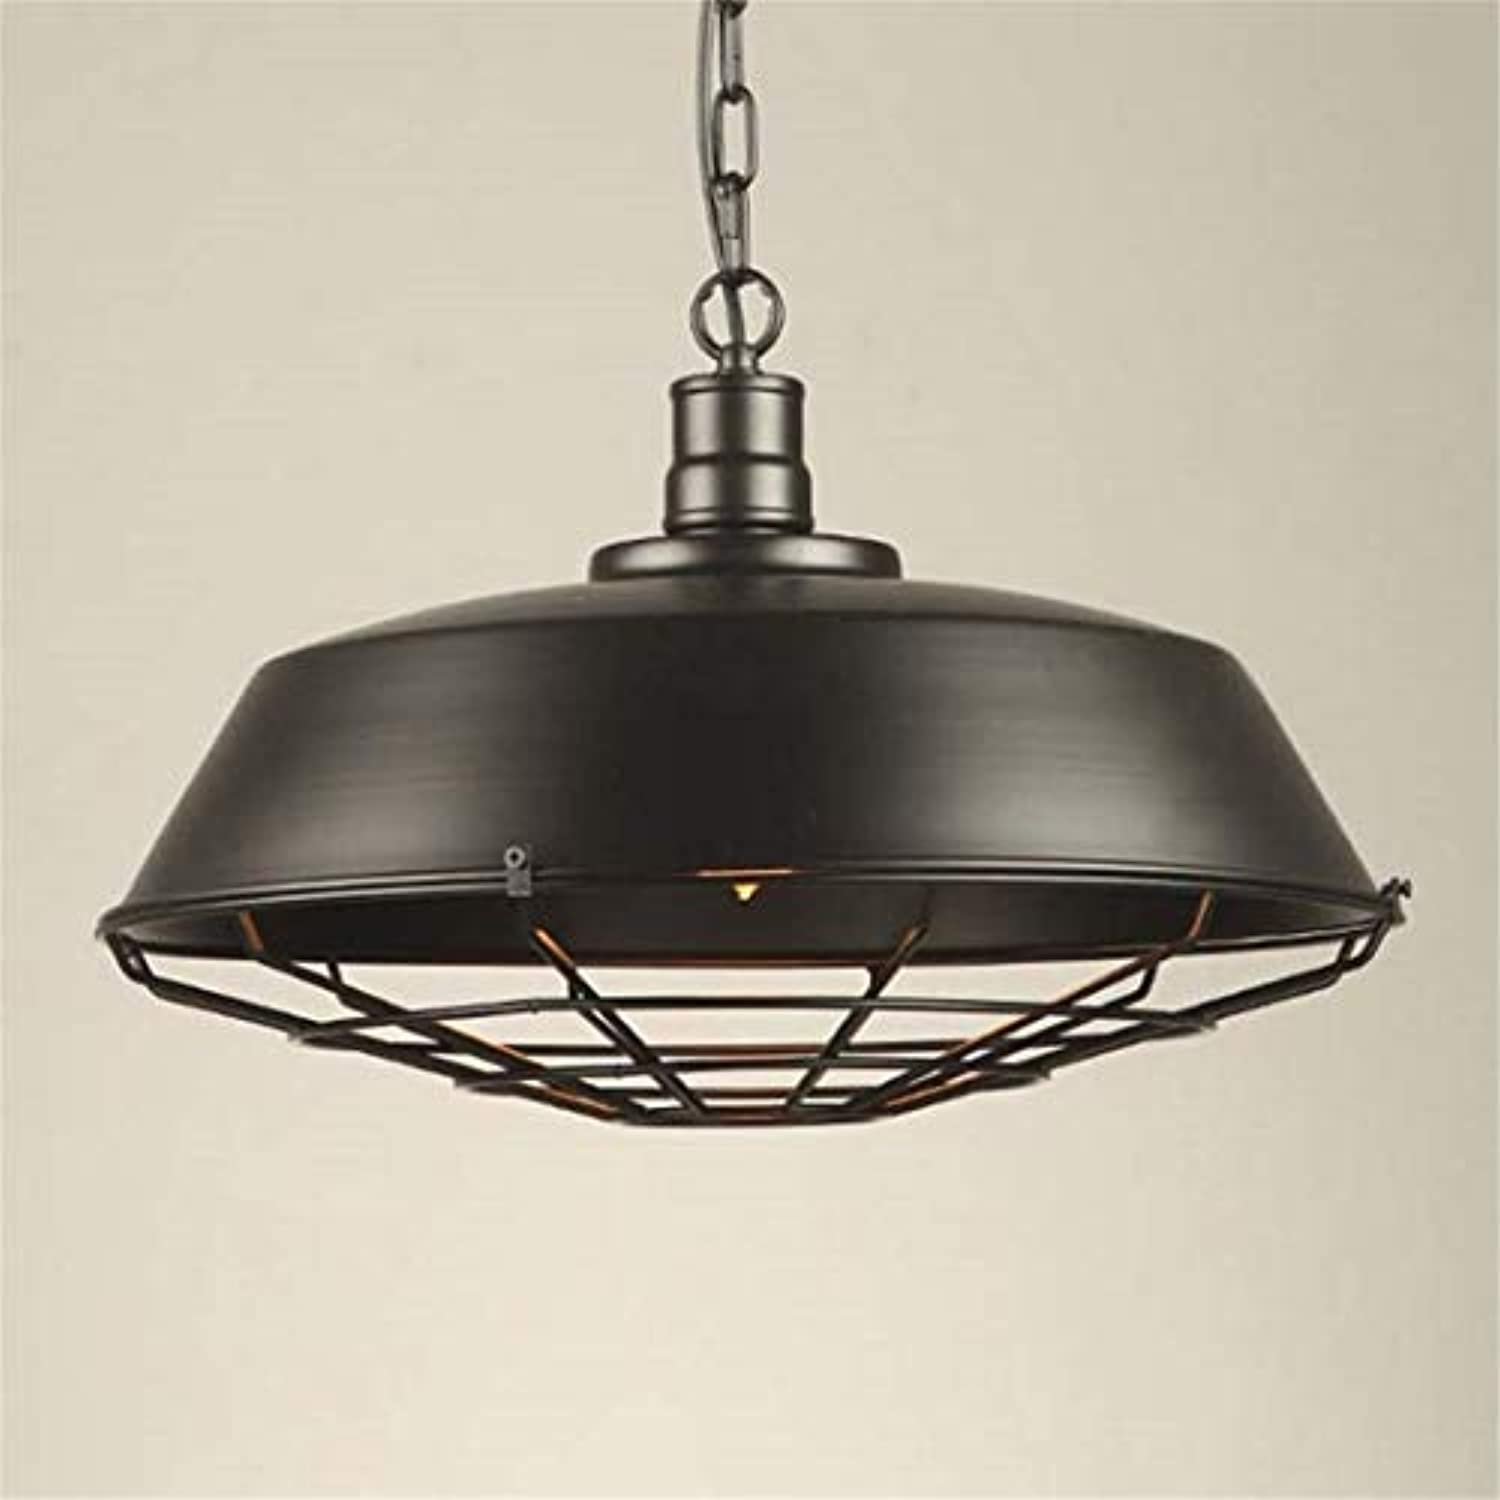 Lichtpendant Light Industrial Vintage Style With Grids 1-Light Adjustable Hanging Lamp Ceiling Fixture